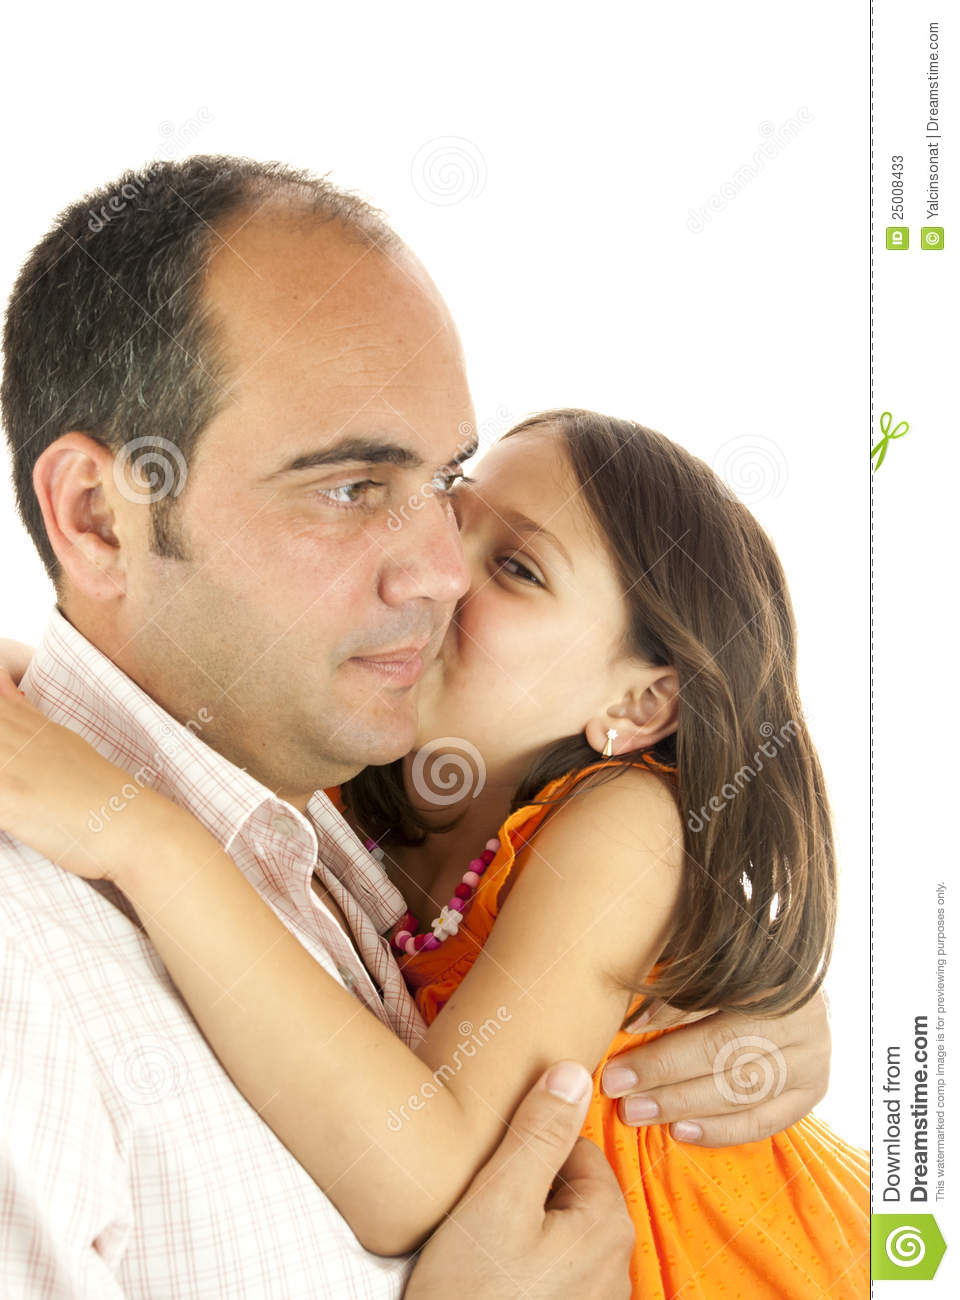 Daughter Loves Daddy Stock Image Image Of Happiness - 25008433-4030